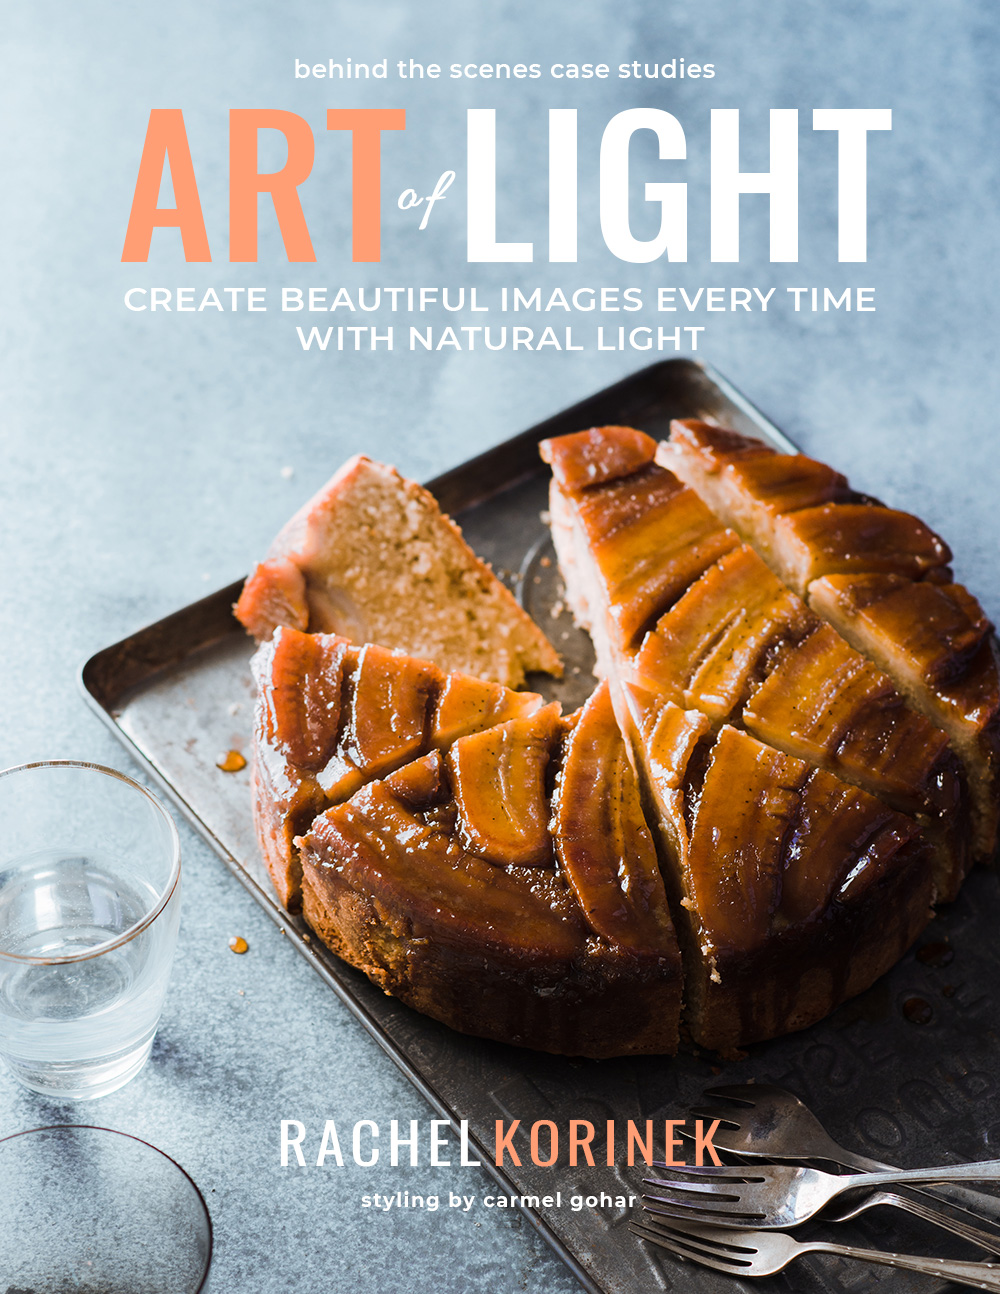 99 food photography tips from photographers thatll blow your mind learn how to manipulate natural light beyond the basic level with rachel korinek fandeluxe Gallery